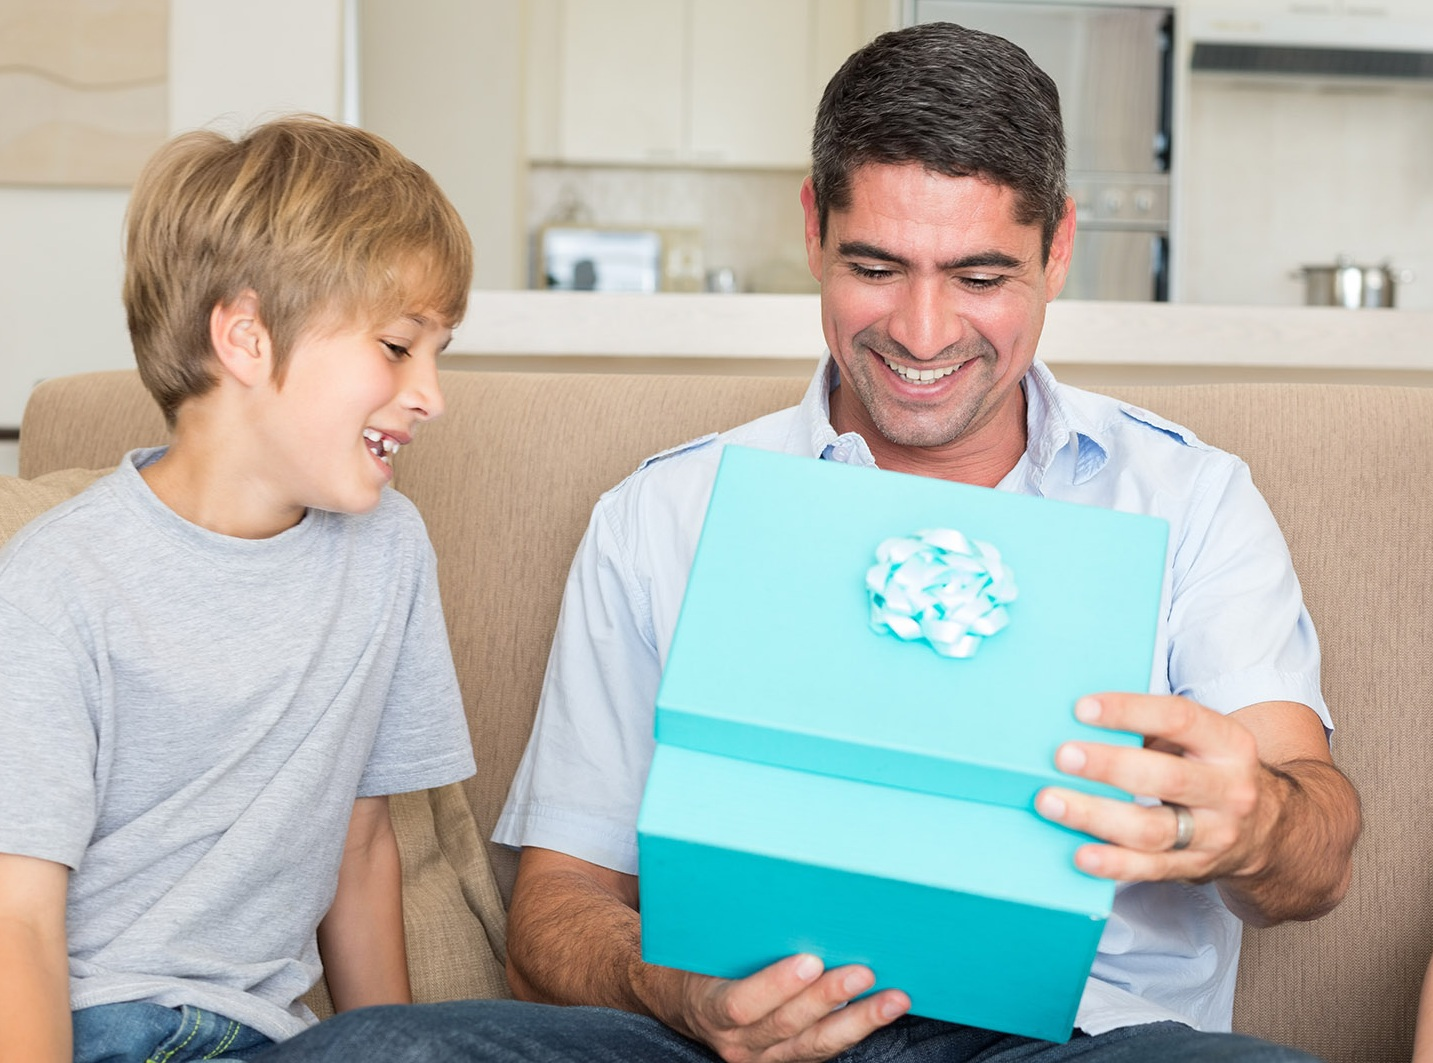 Gifts for dad from son